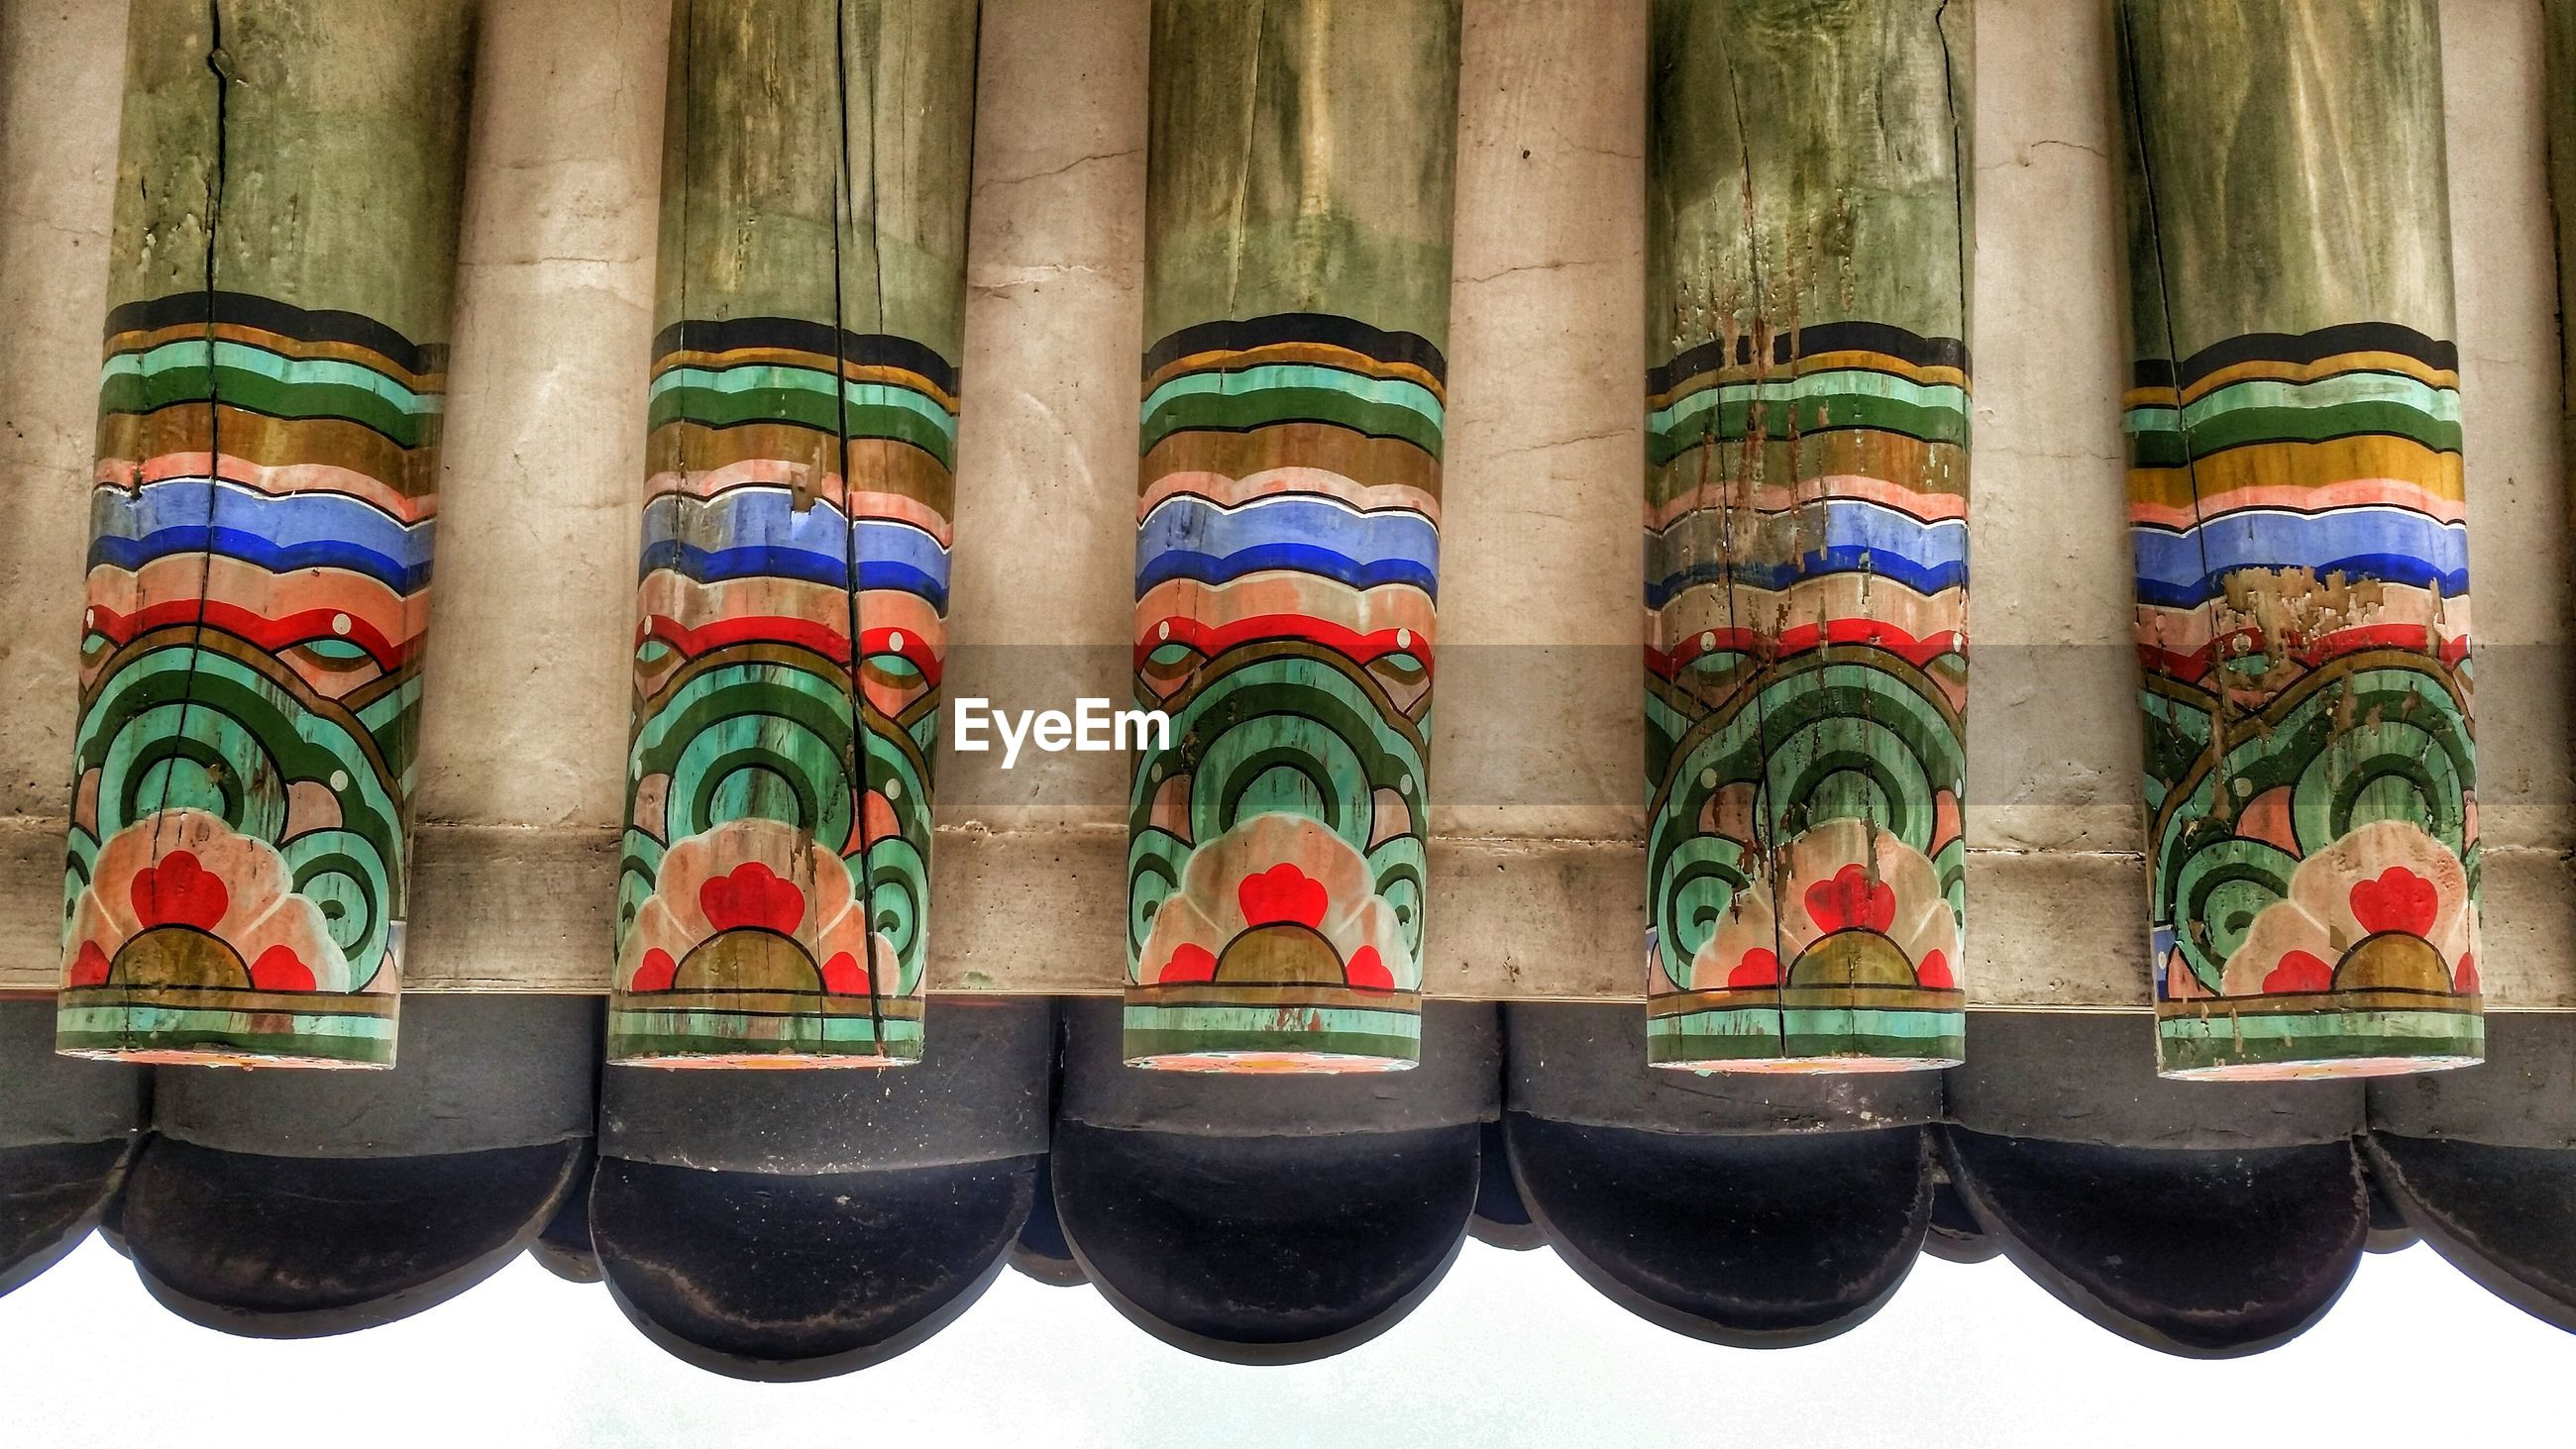 Upside down image of painted wooden poles